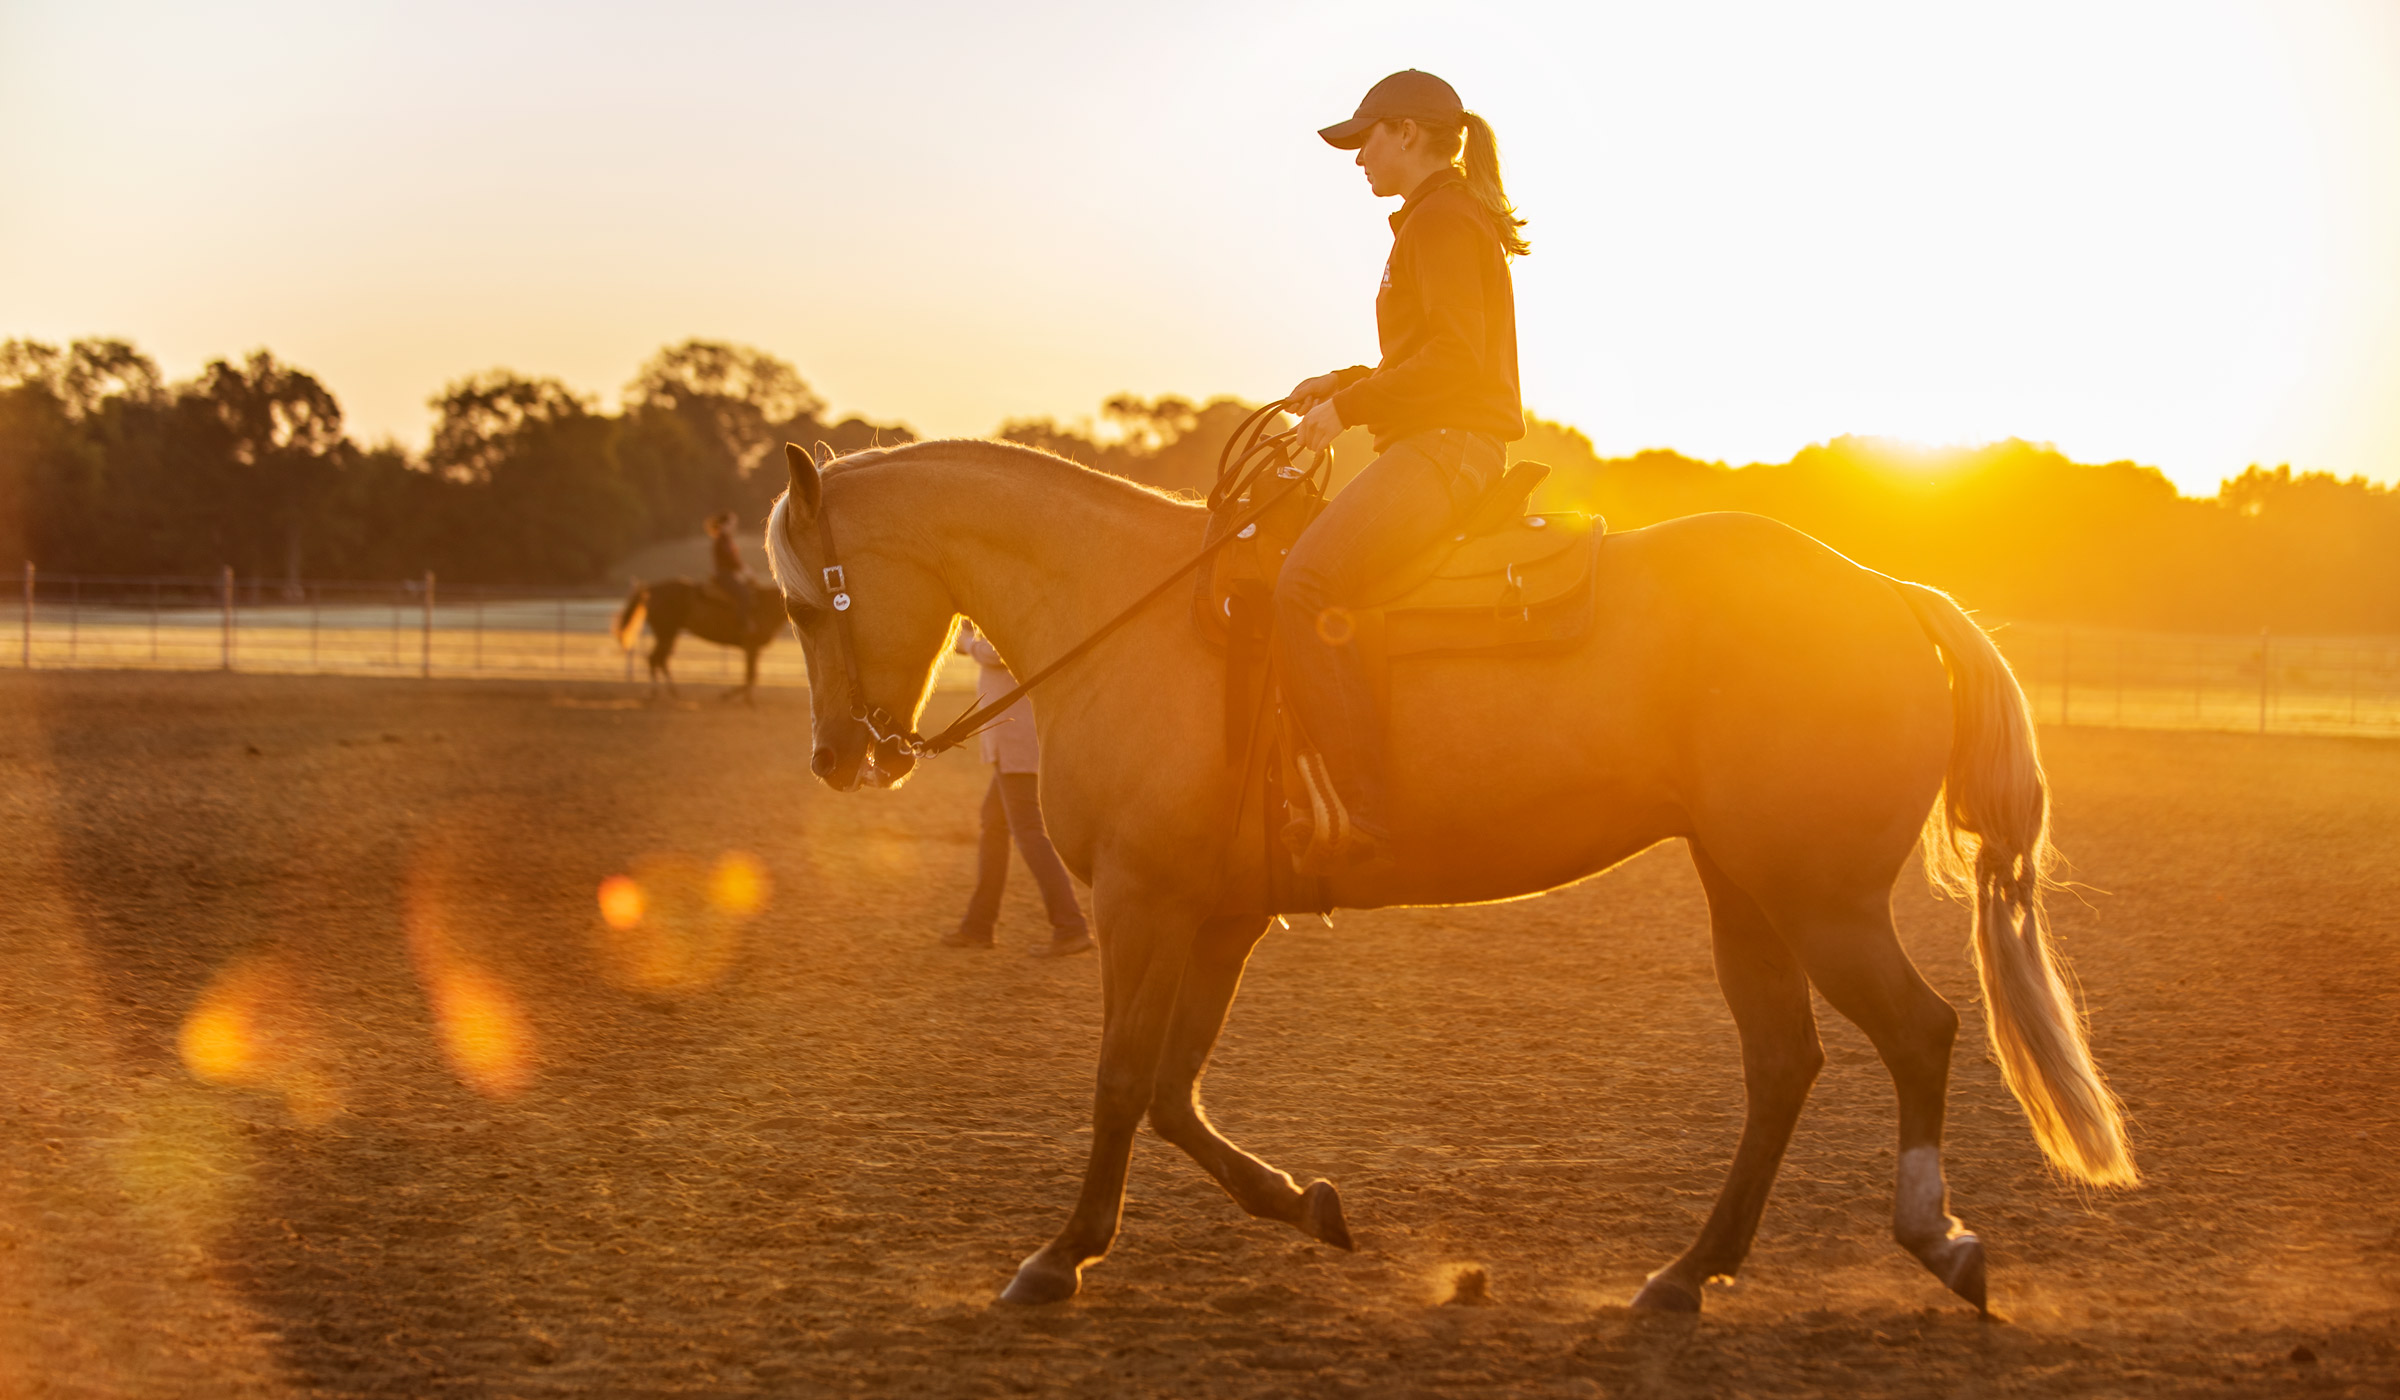 With the morning sunbeams around her, student Equestrian Club member  Jillian Conner rides her horse while kicking up dust.